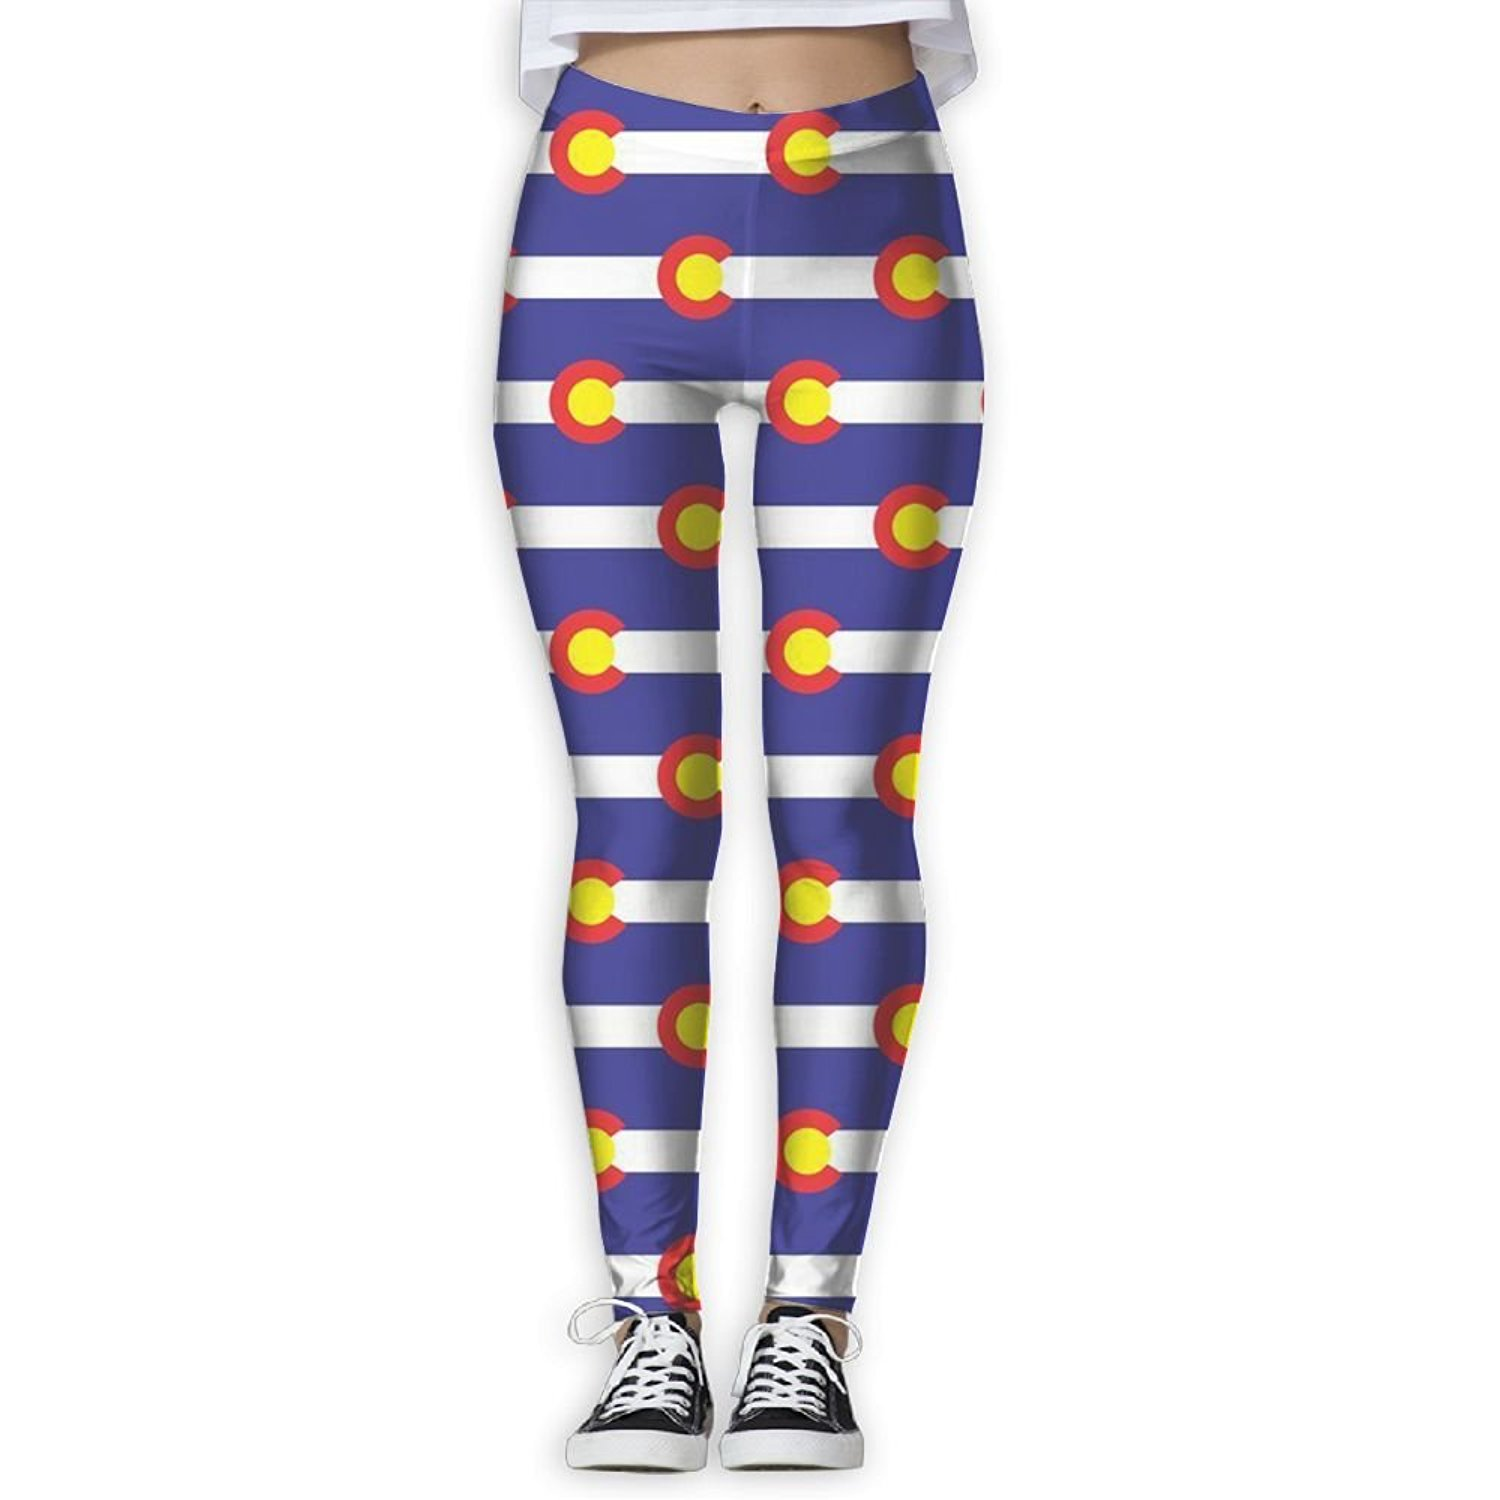 fe2f840df1 Get Quotations · KUKUUU Colorado Flag Ladies Stretchy Yoga Pants Ankle  Leggings Outdoor Tight Pants